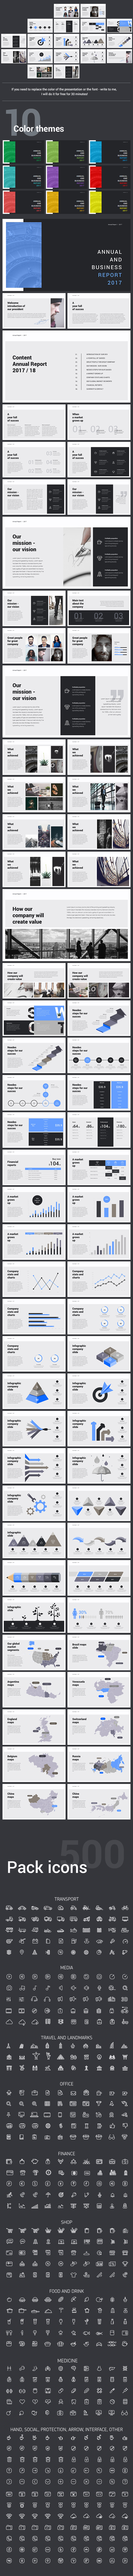 GraphicRiver Annual and Business Report Keynote 2018 20789619